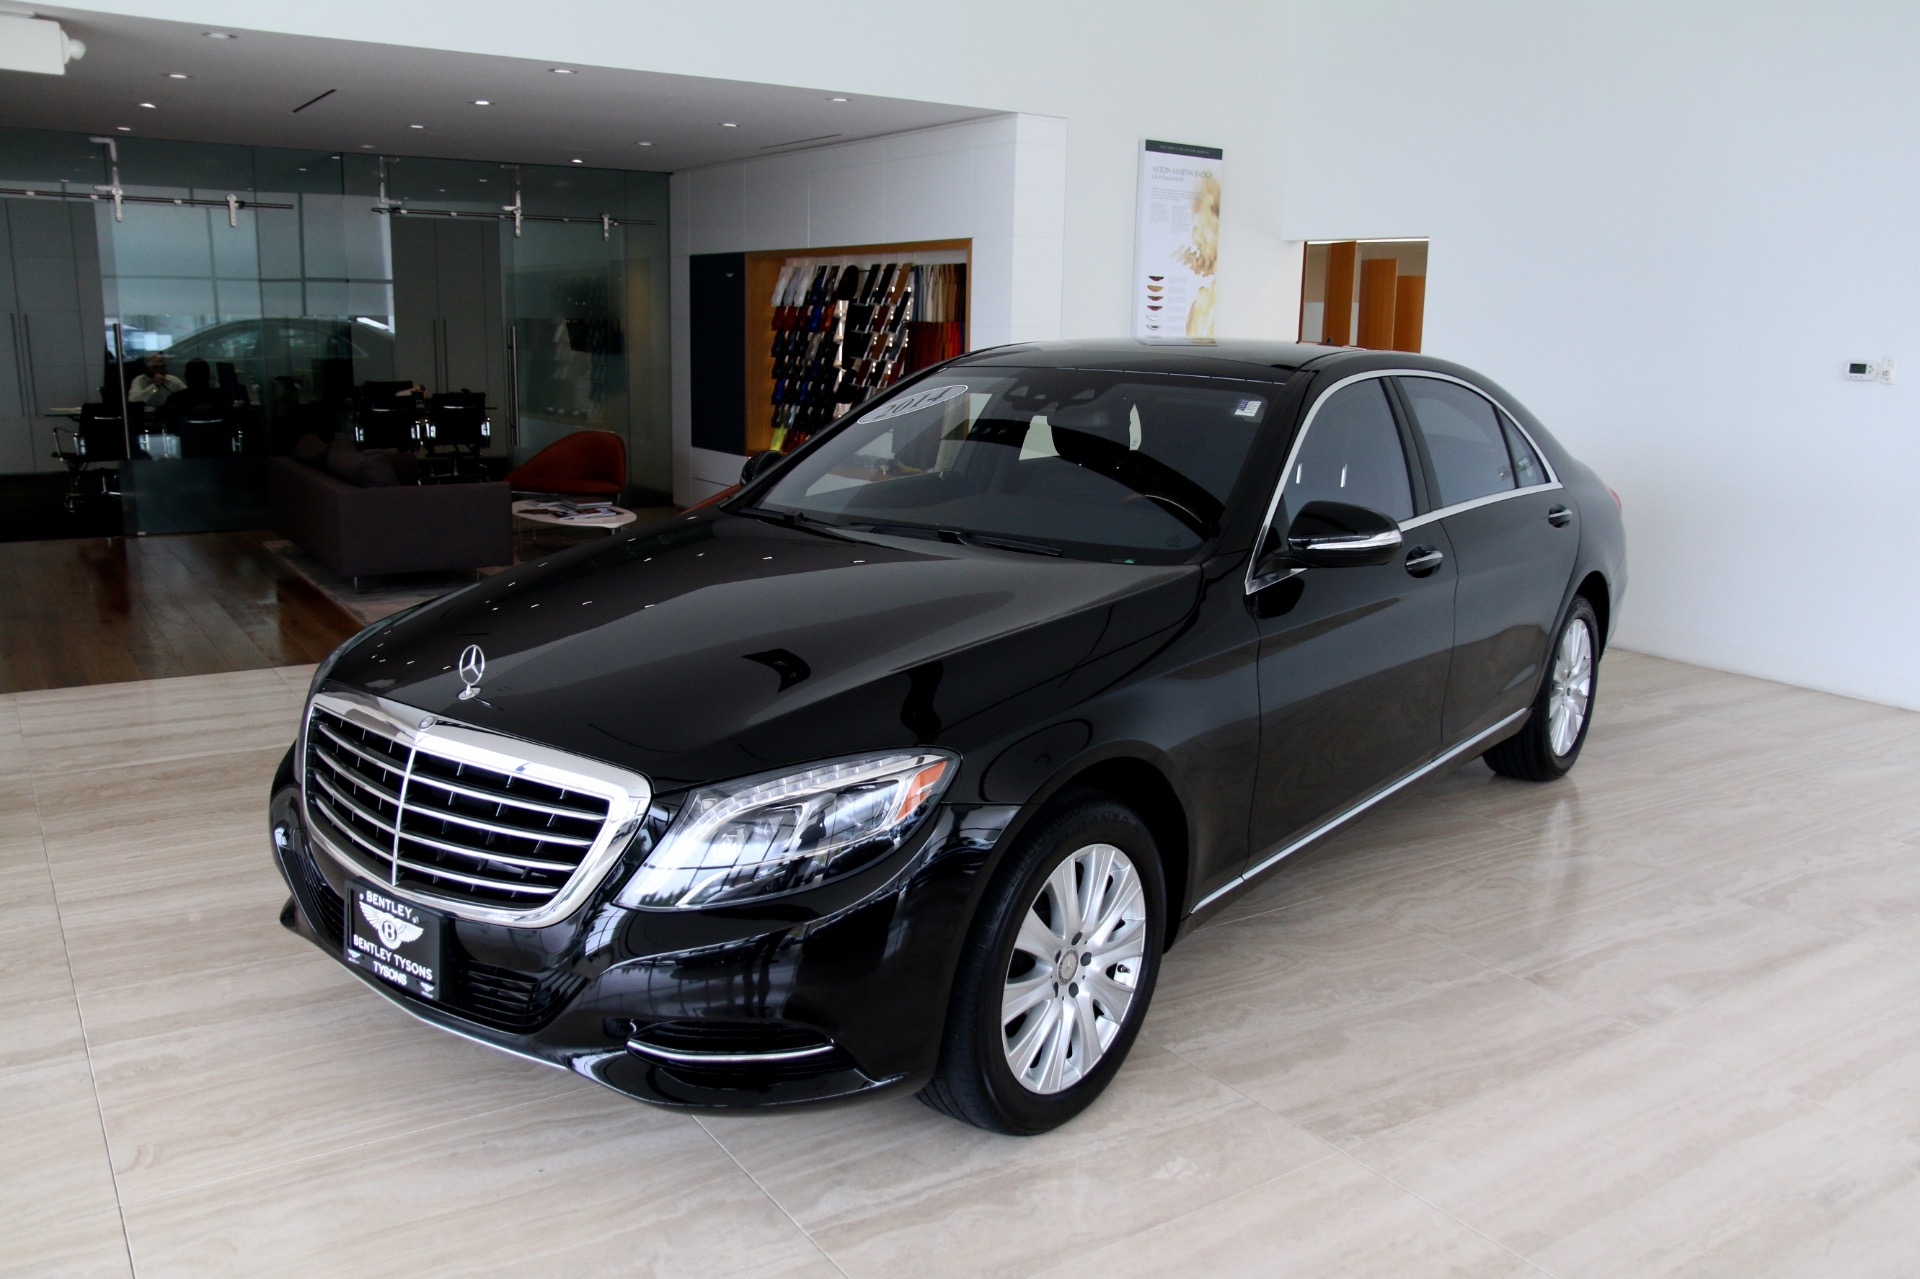 2014 Mercedes Benz S Class S 550 4MATIC Stock P for sale